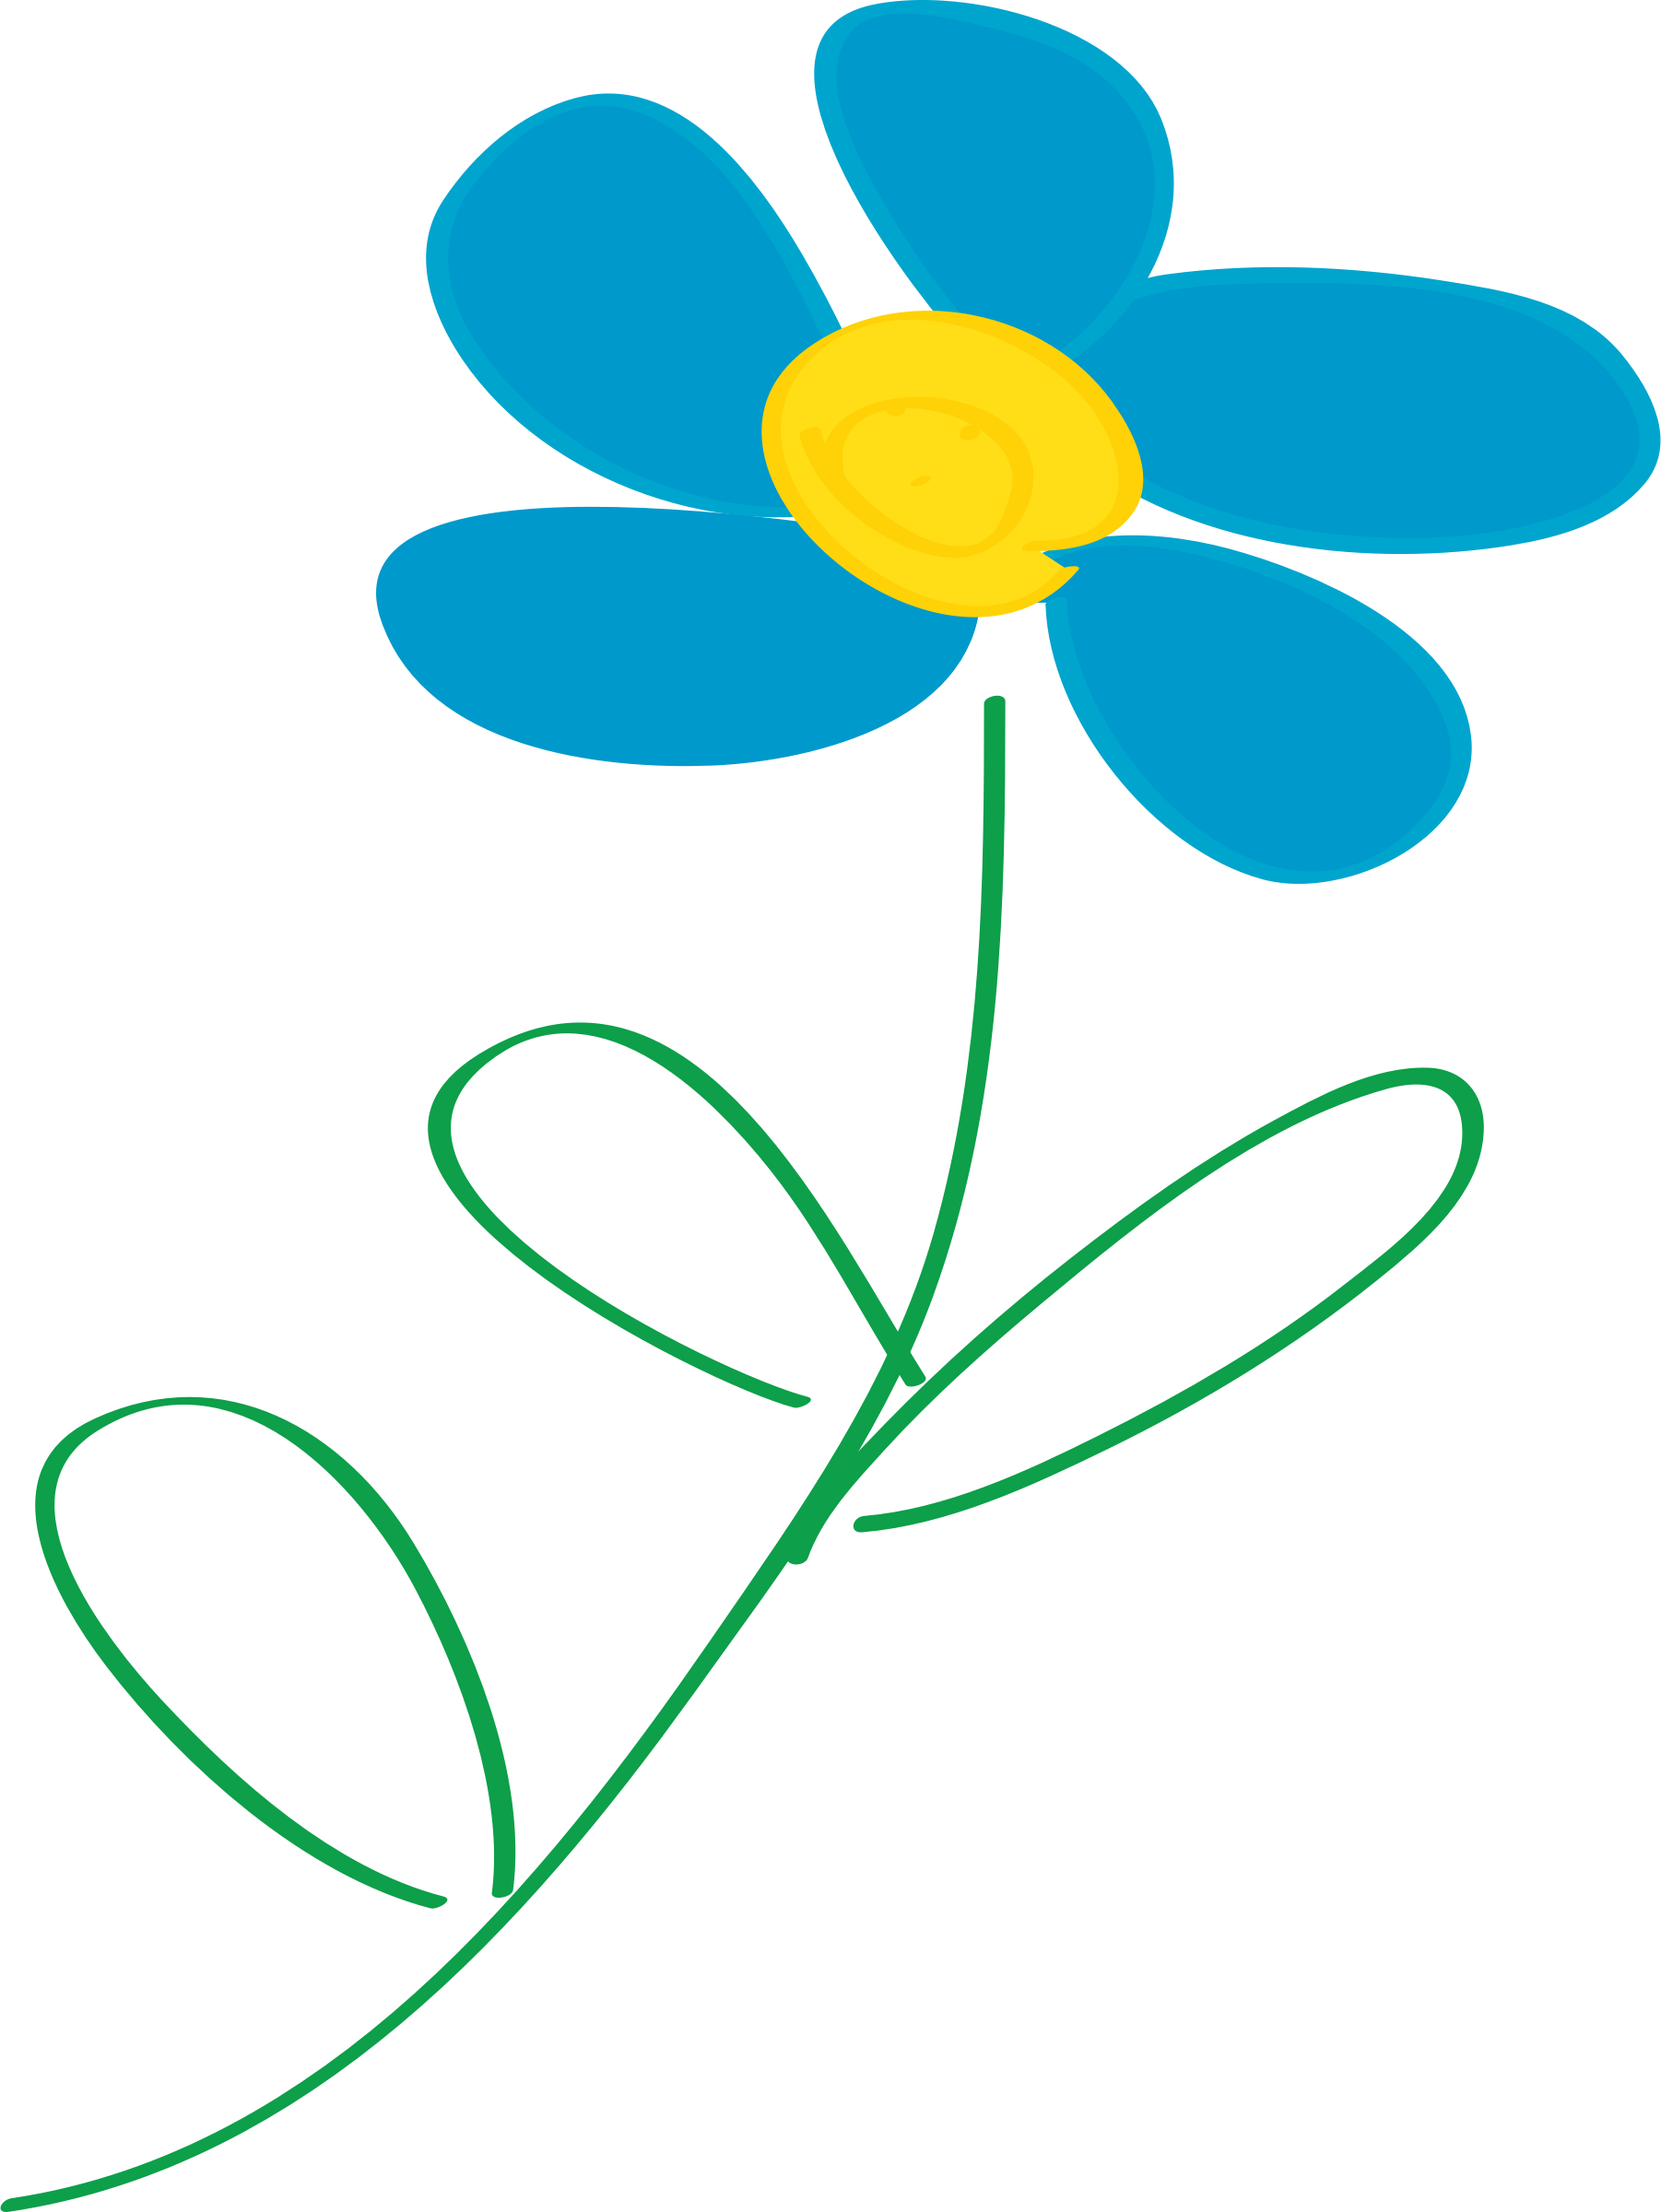 Clipart fall whimsical. Blue flower big image